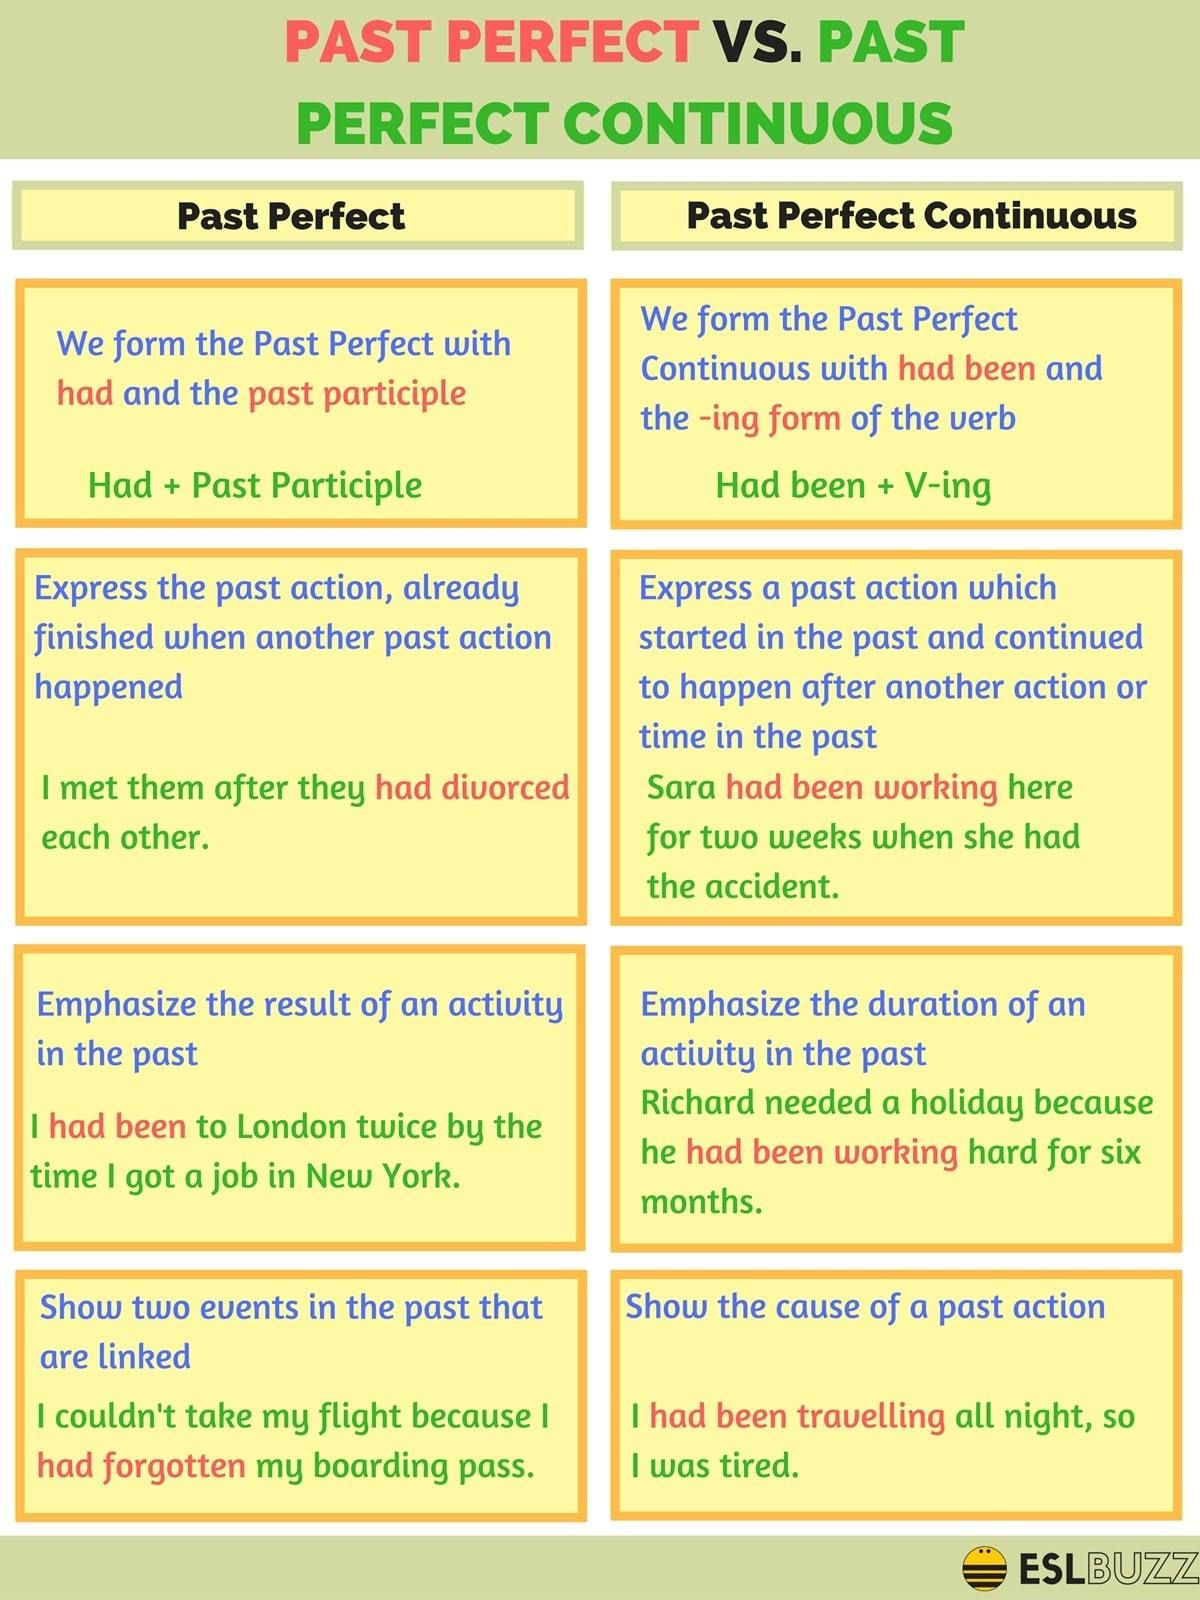 Past Perfect Vs Past Perfect Continuous